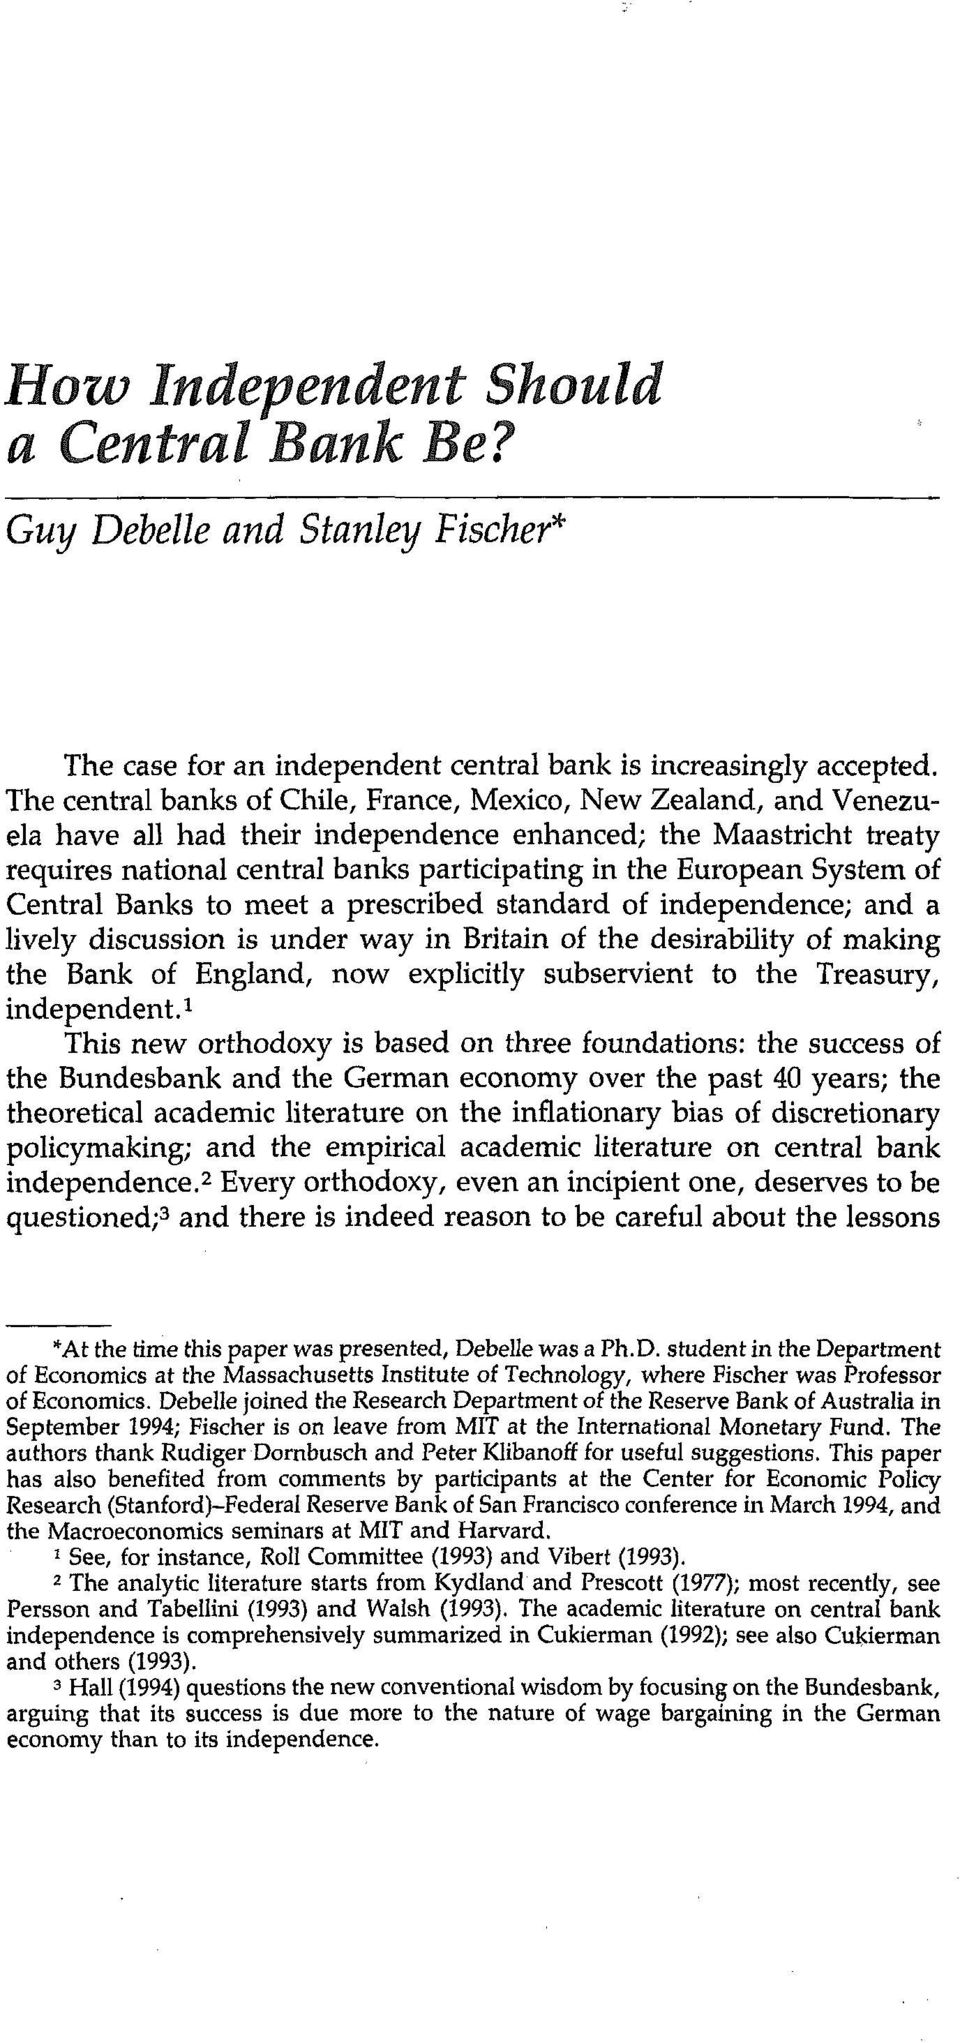 System of Central Banks to meet a prescribed standard of independence; and a lively discussion is under way in Britain of the desirability of making the Bank of England, now explicitly subservient to